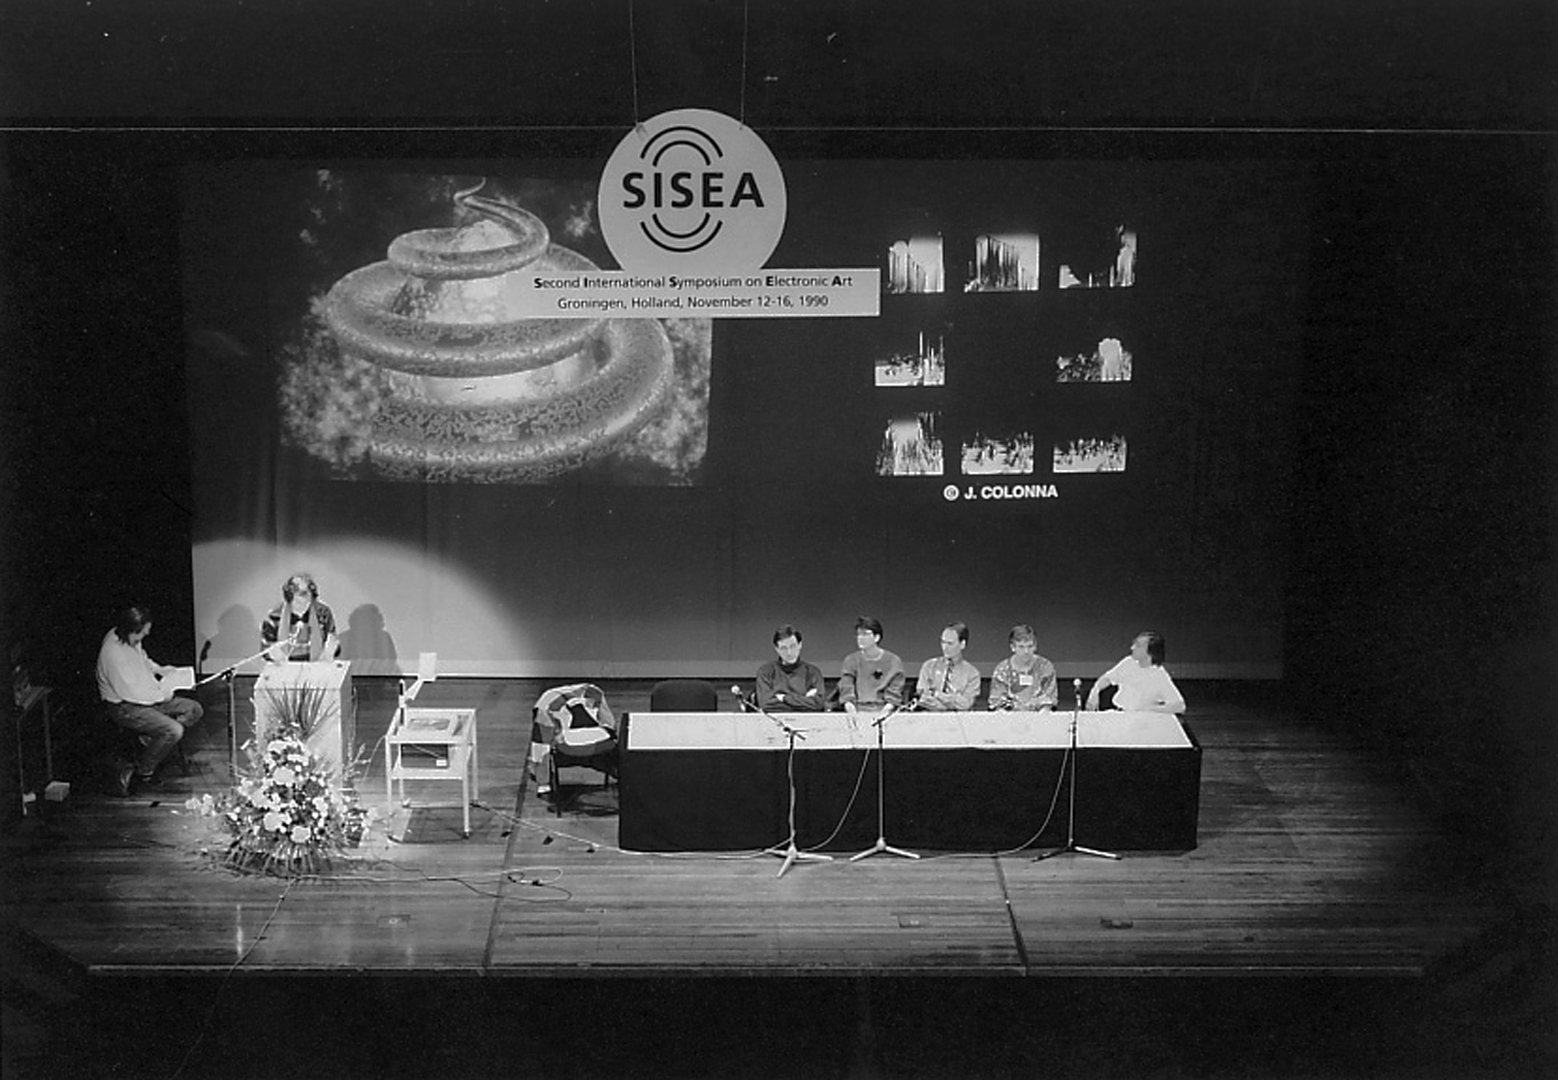 ©SISEA: Second International Symposium on Electronic Art, Carl Loeffler, Vernon Reed, Fred Truck, and Benjamin J. Britton, Interactive Electronic Art